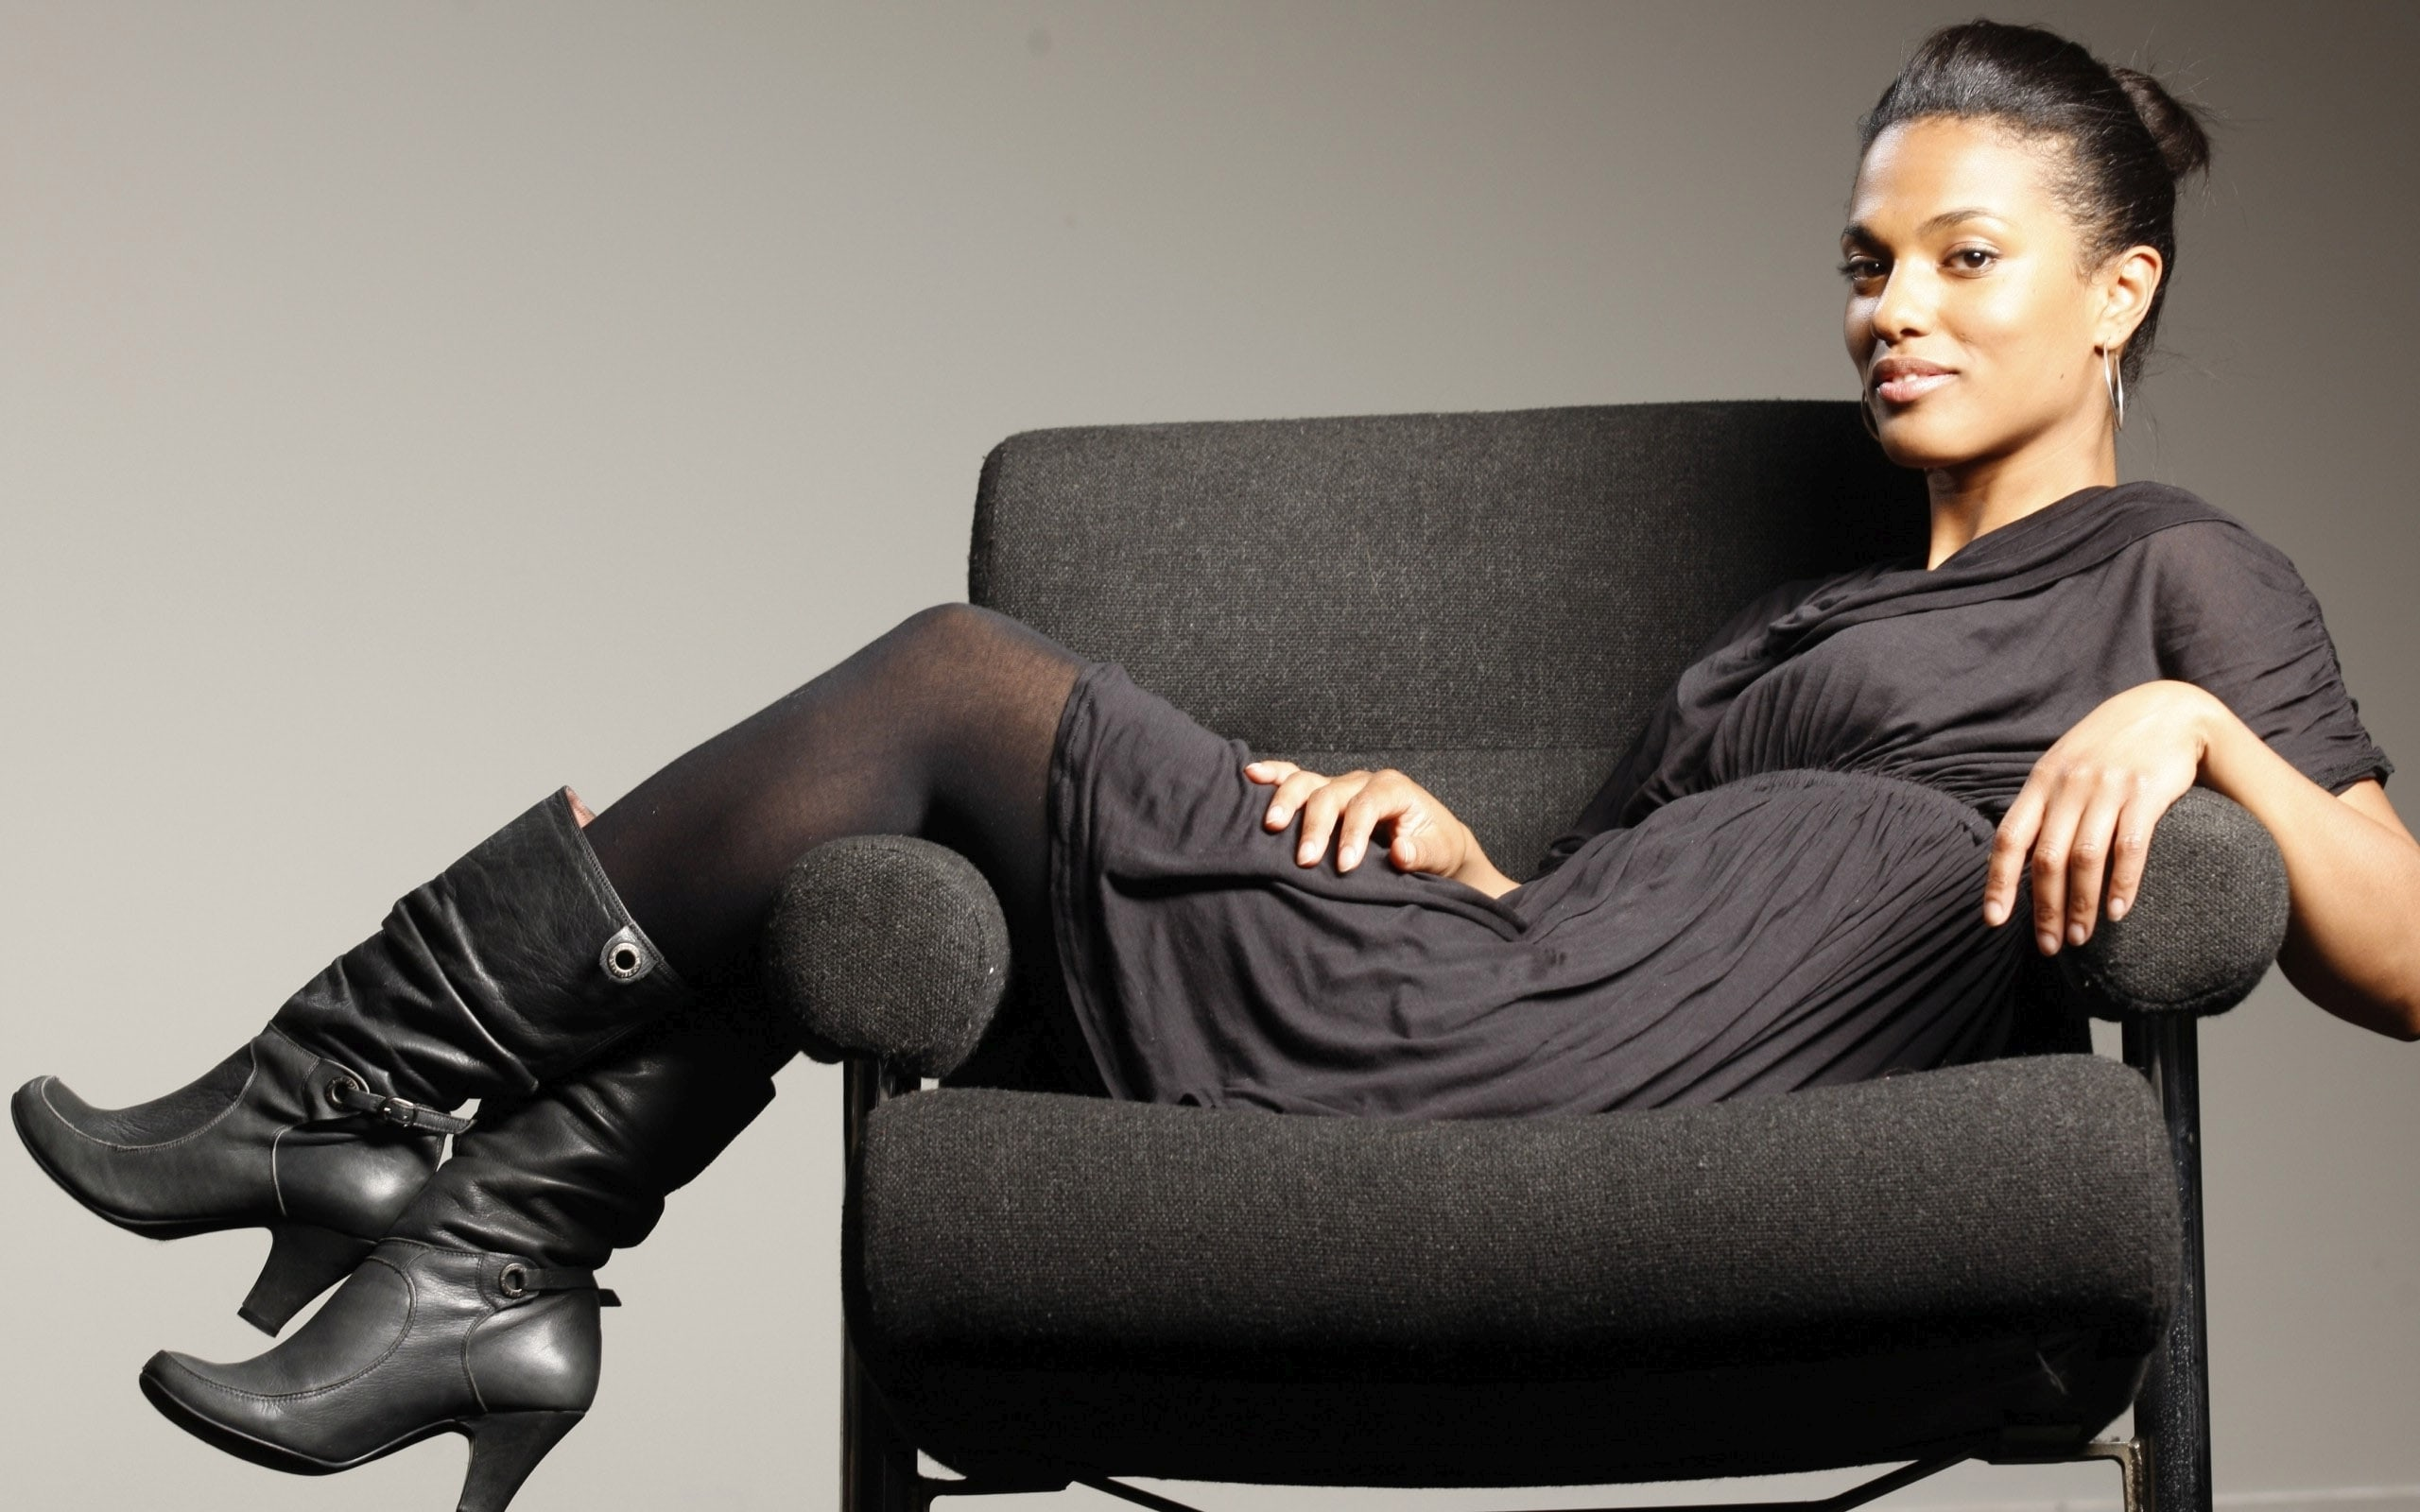 freema agyeman wallpaper background 61541